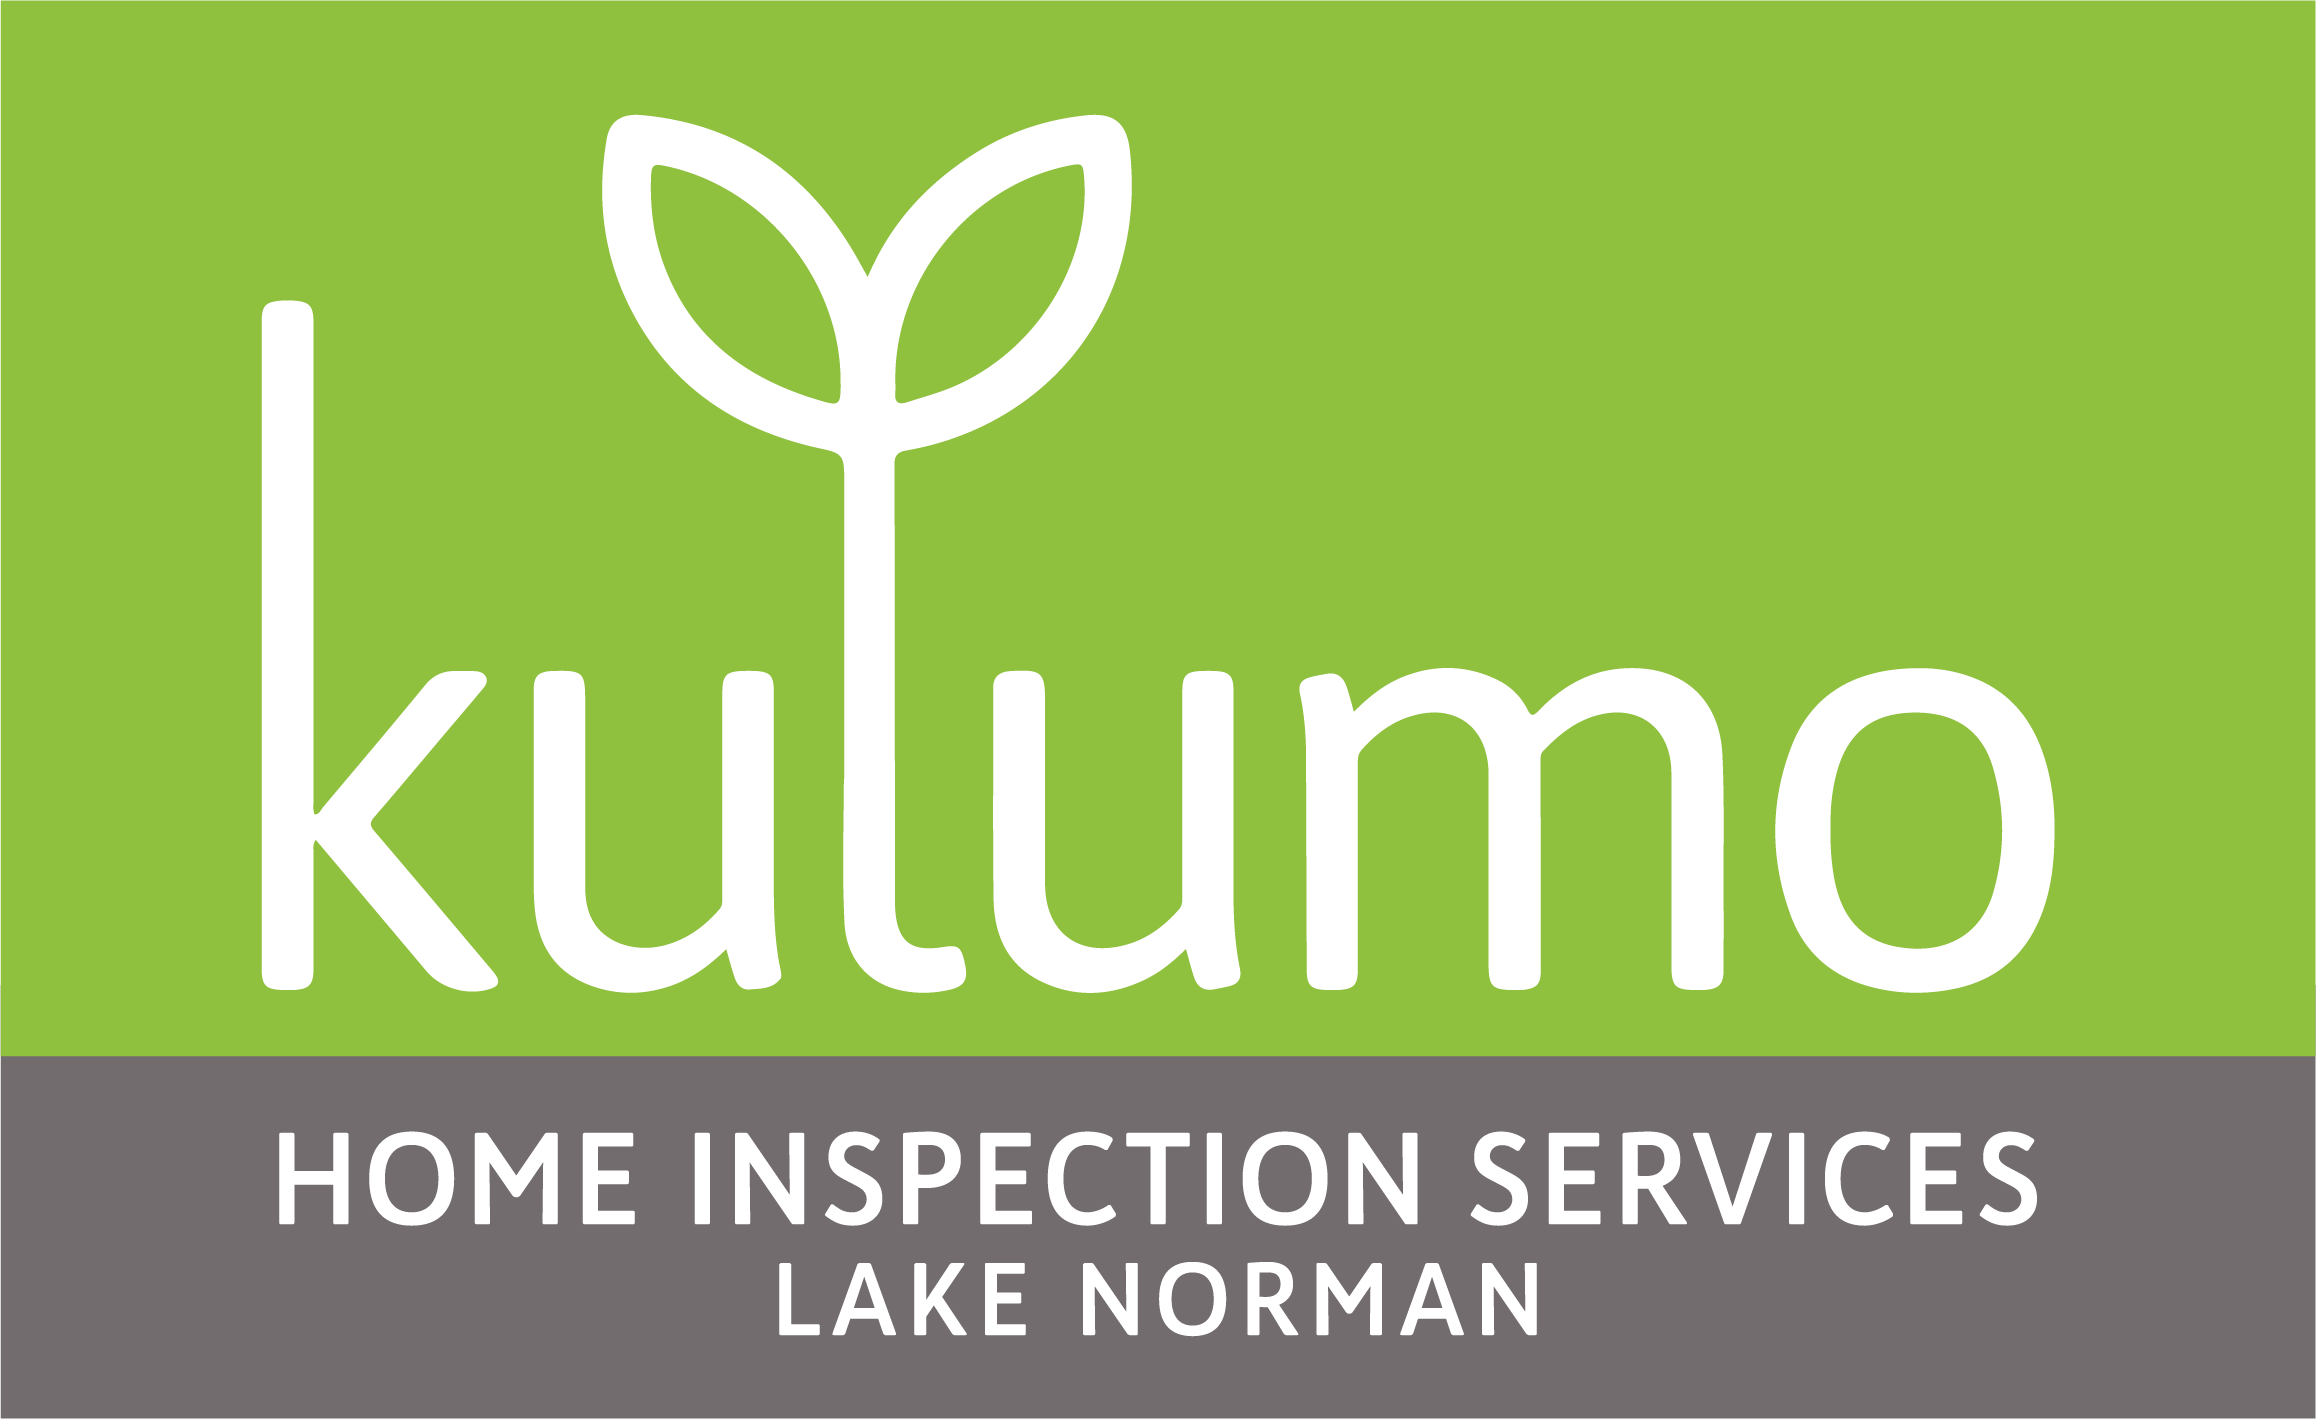 Kulumo Home Inspection Services Lake Norman